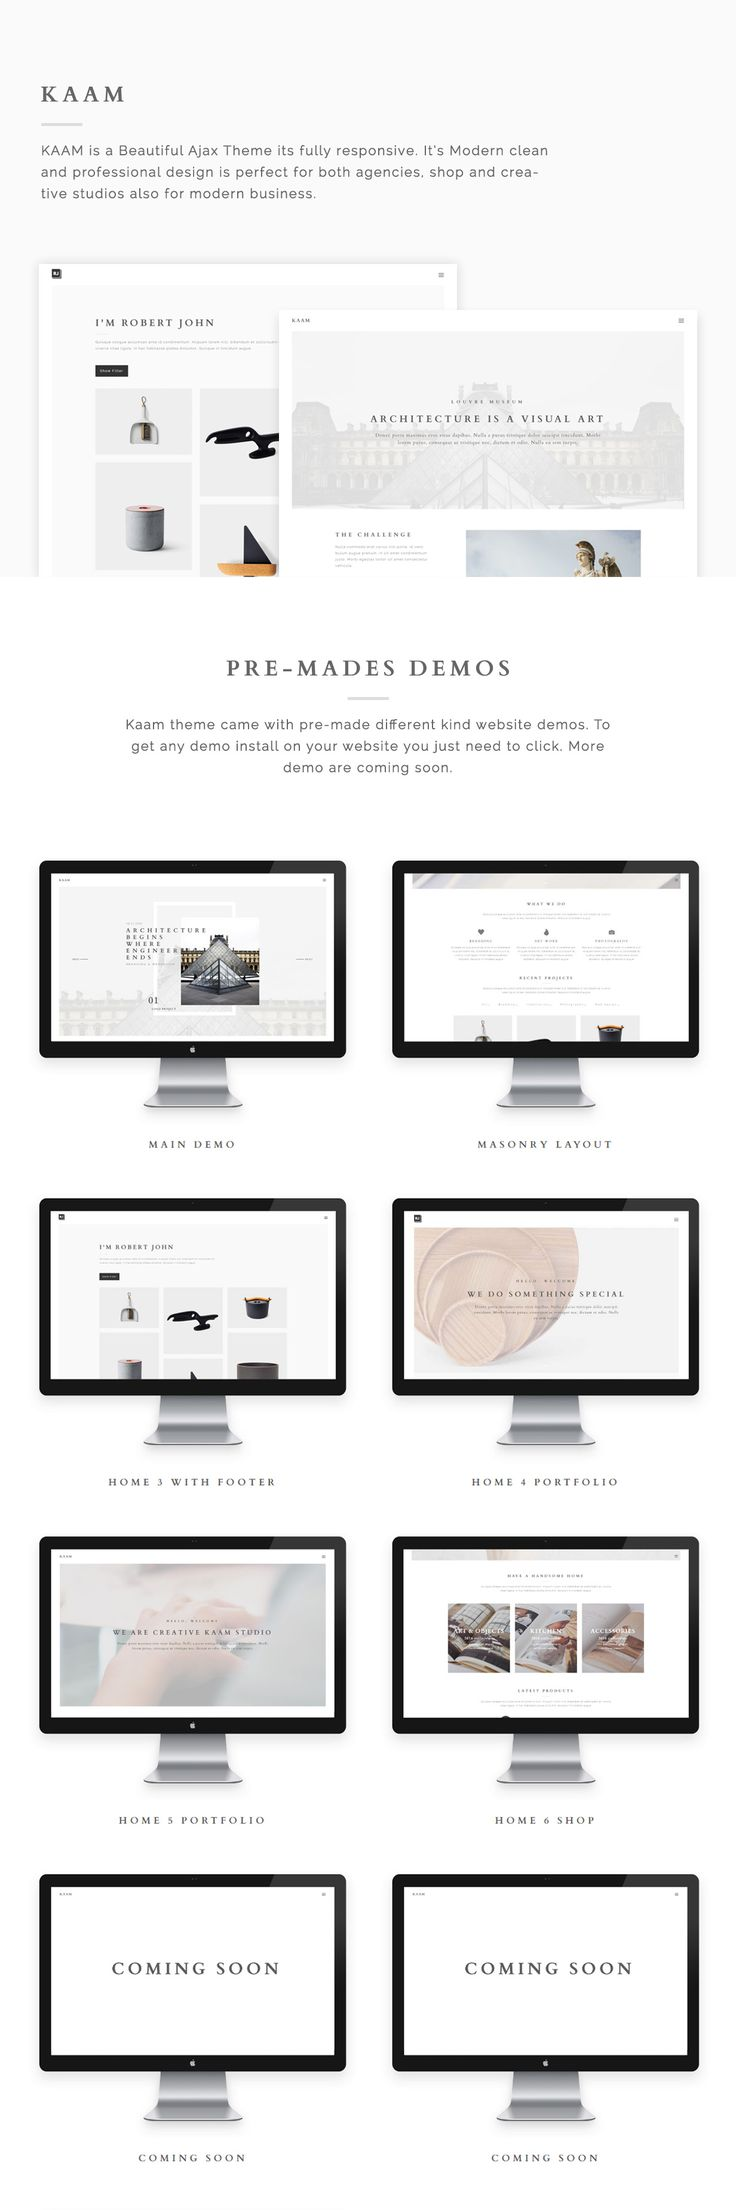 its modern clean and professional design is perfect for both agencies shop and creative studios but also for modern business